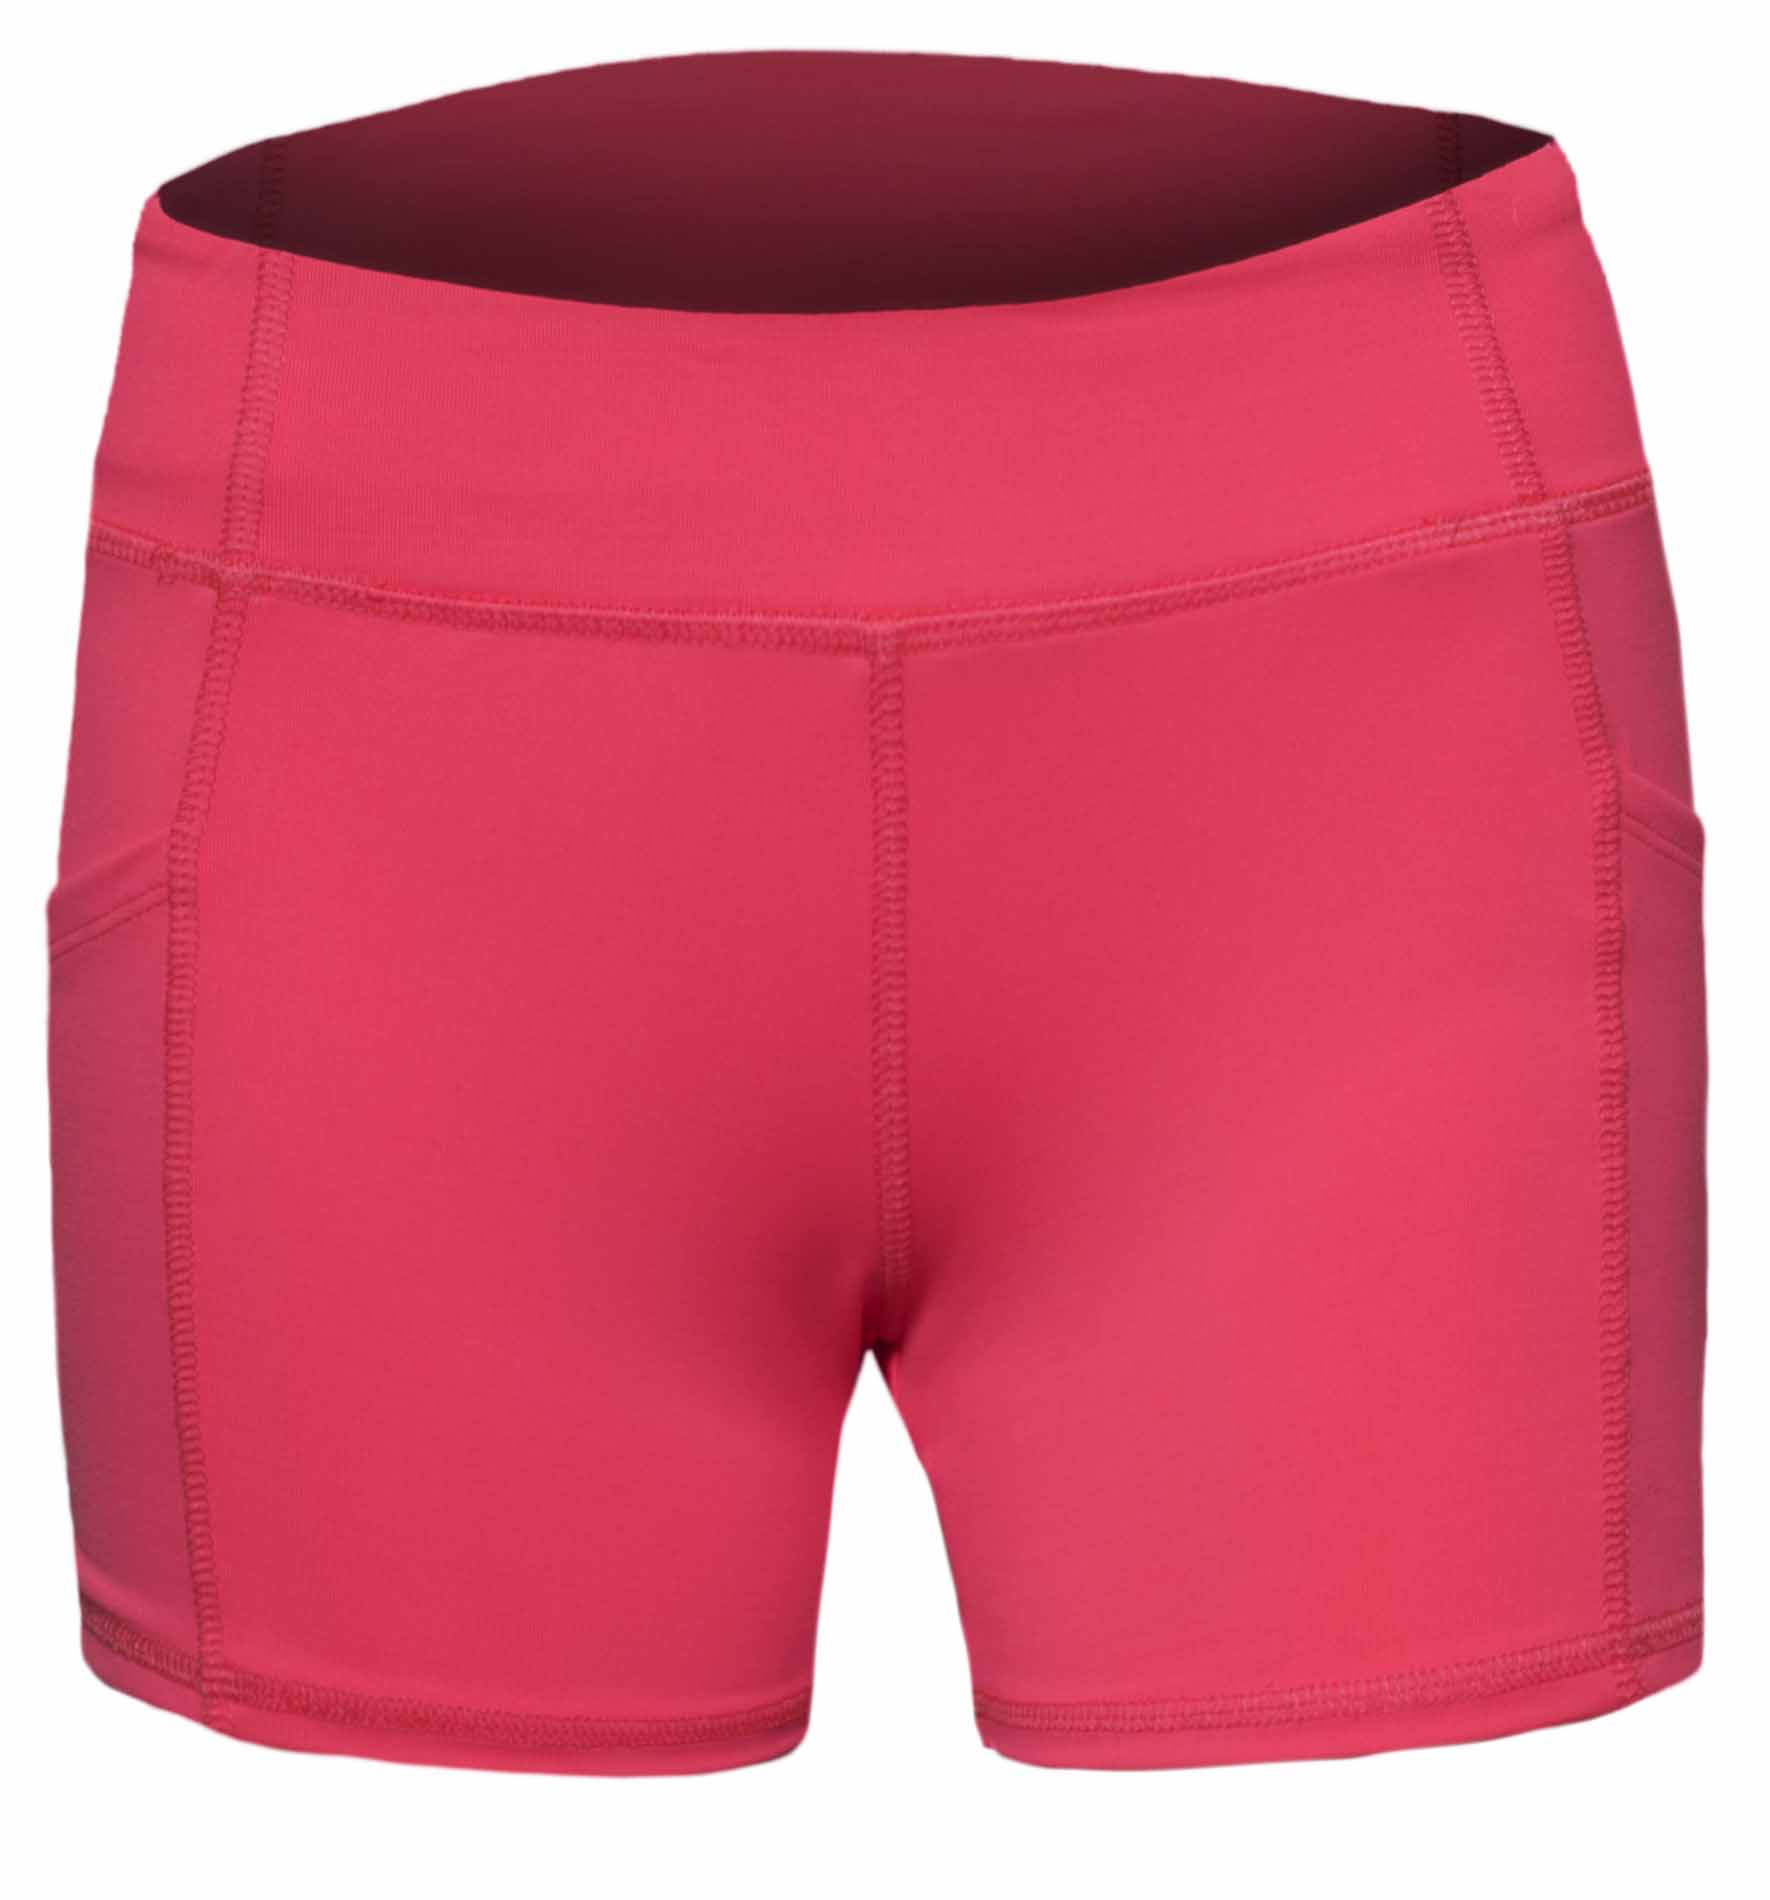 Shop women's workout shorts from DICK'S Sporting Goods. Pull on women's workout shorts for running, weight lifting, hiking, golf & more from Nike and more top brands.